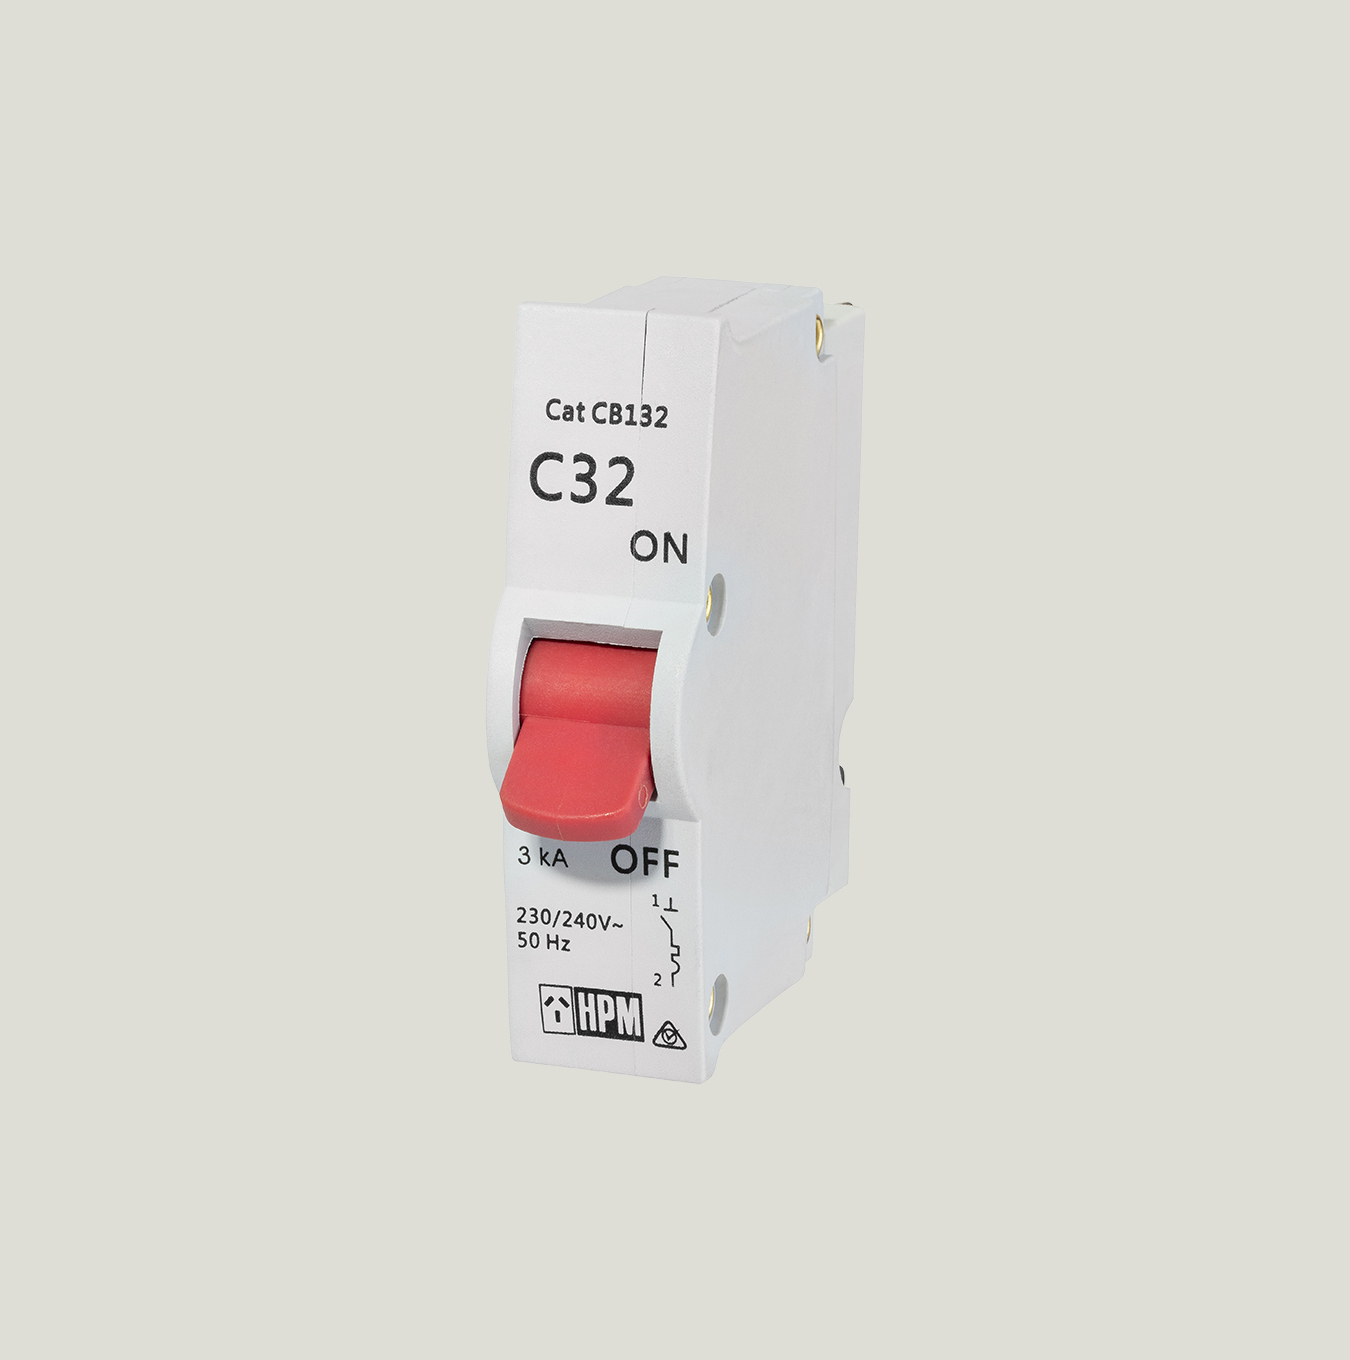 Astounding 32A Plug In Circuit Breaker For Cooker Oven And Stove Circuits Wiring Cloud Hisonuggs Outletorg